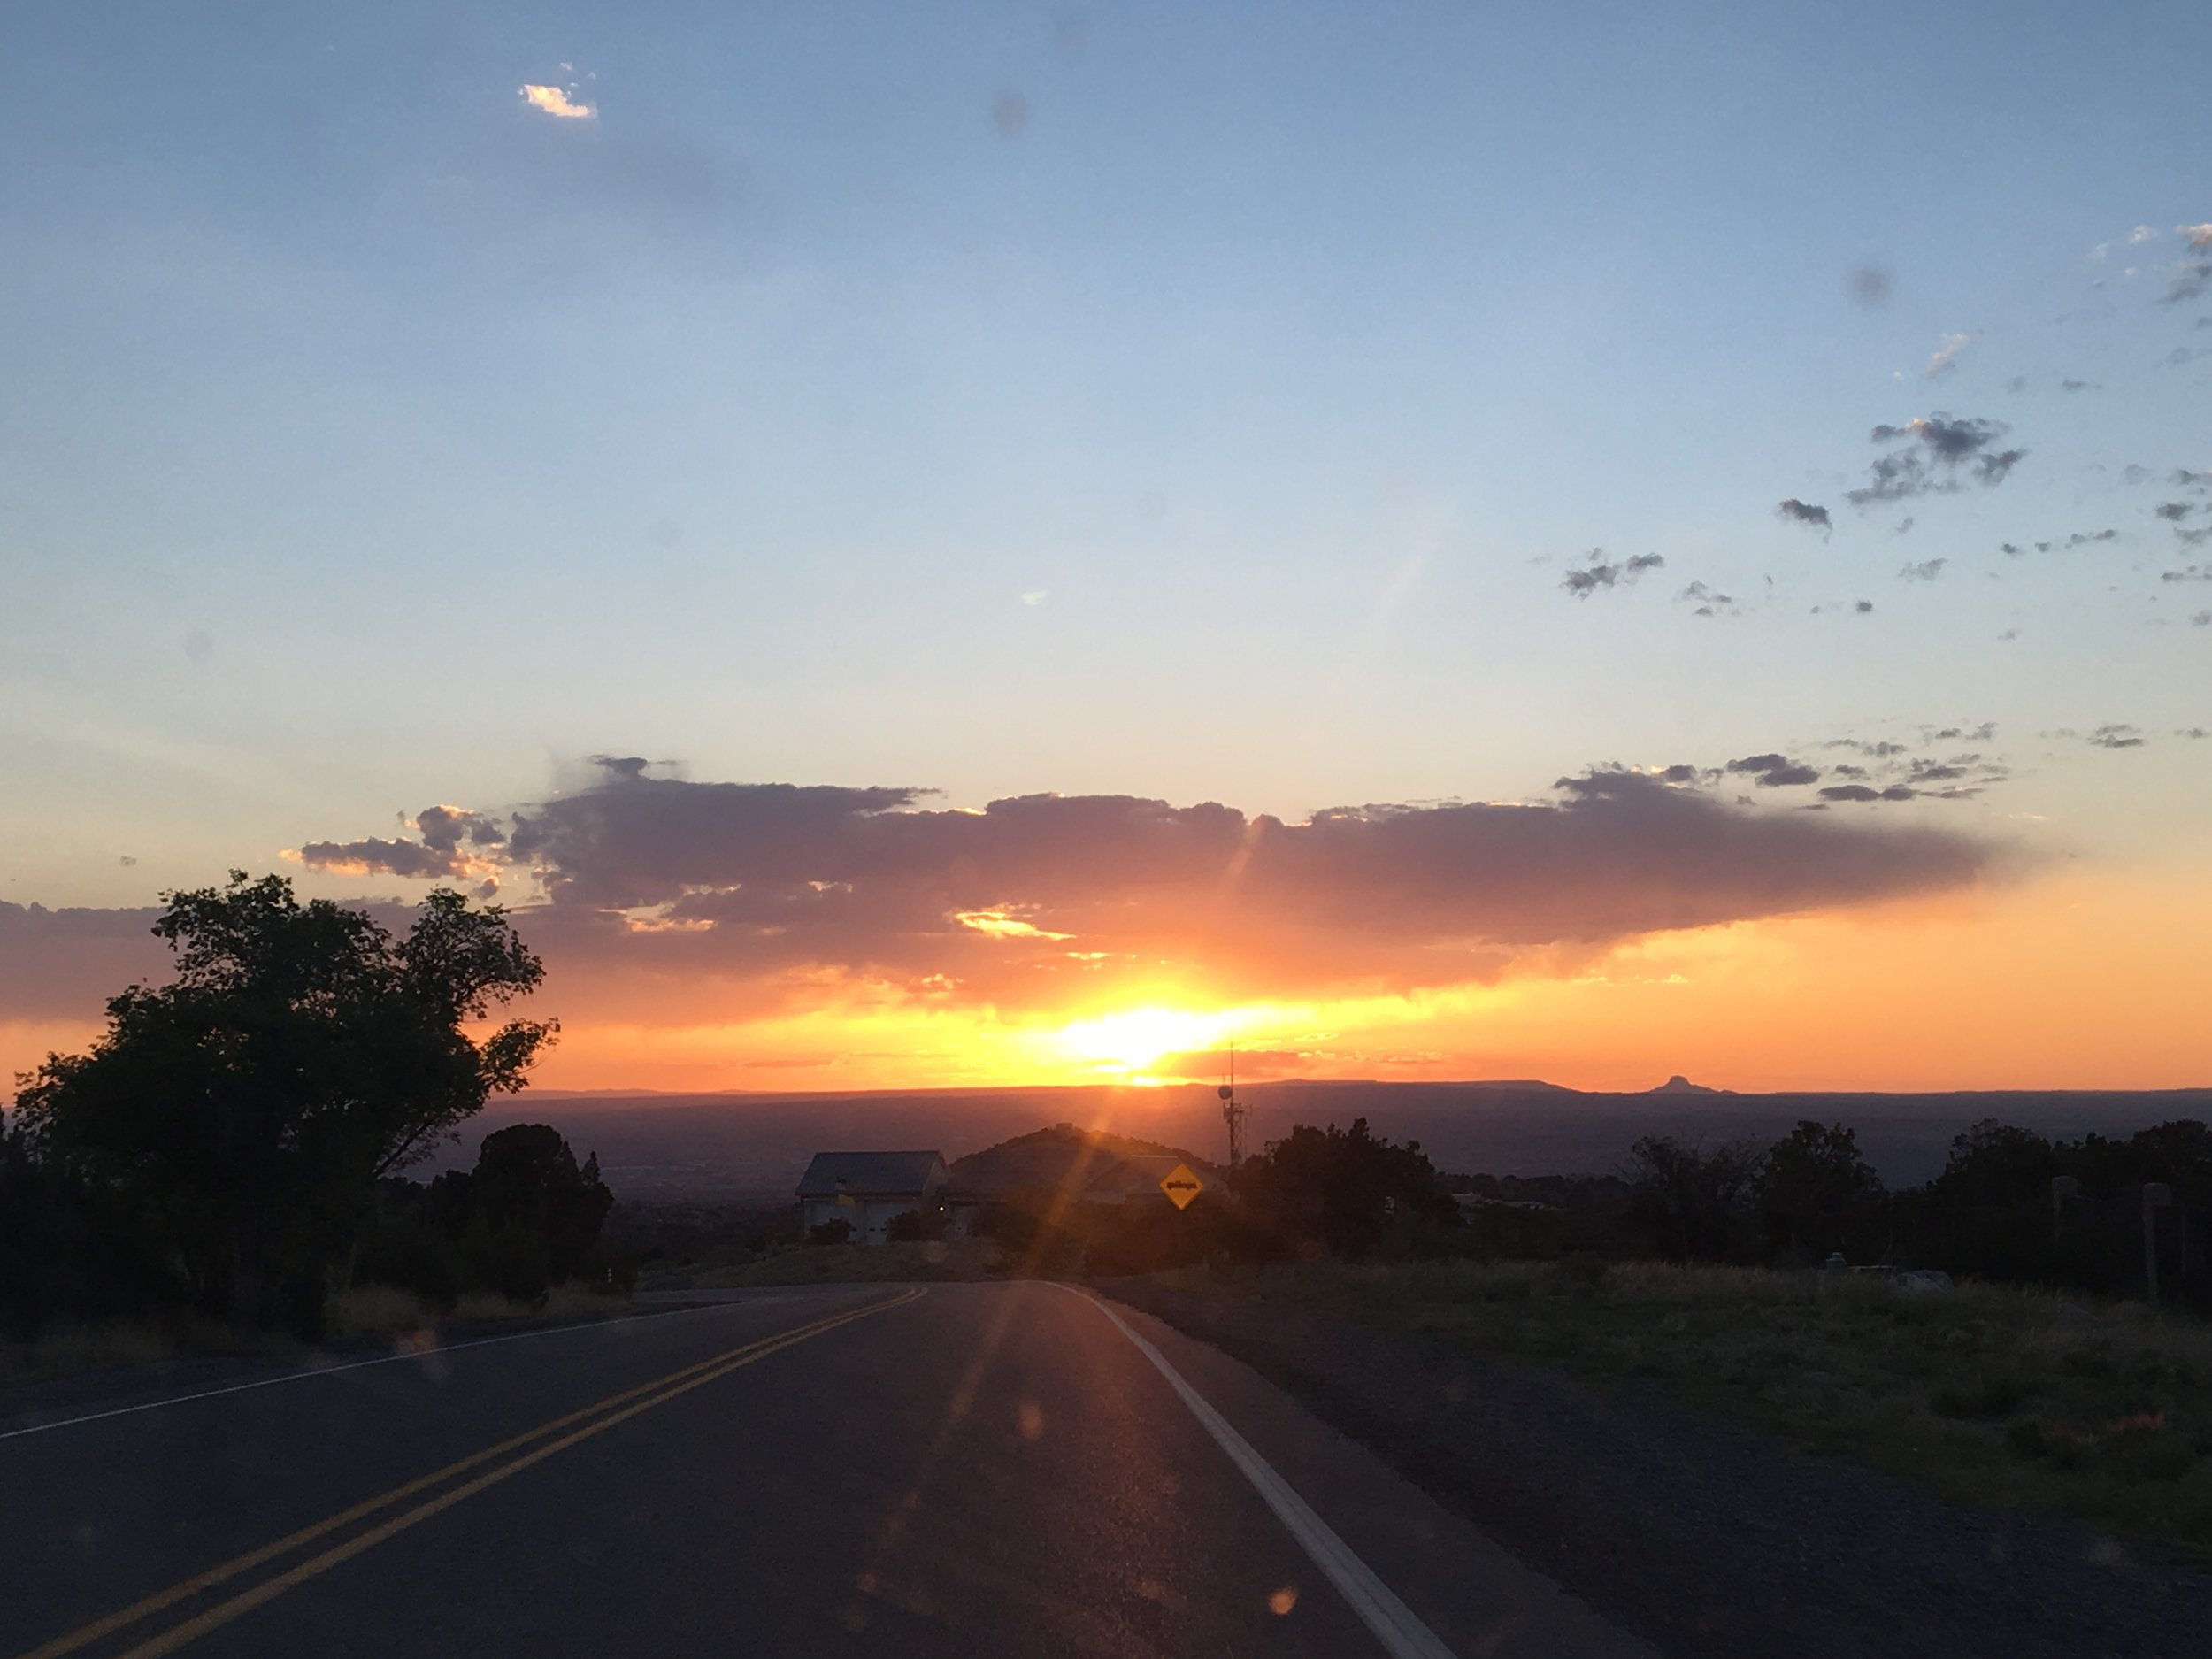 Stunning sunset in Placitas, NM!